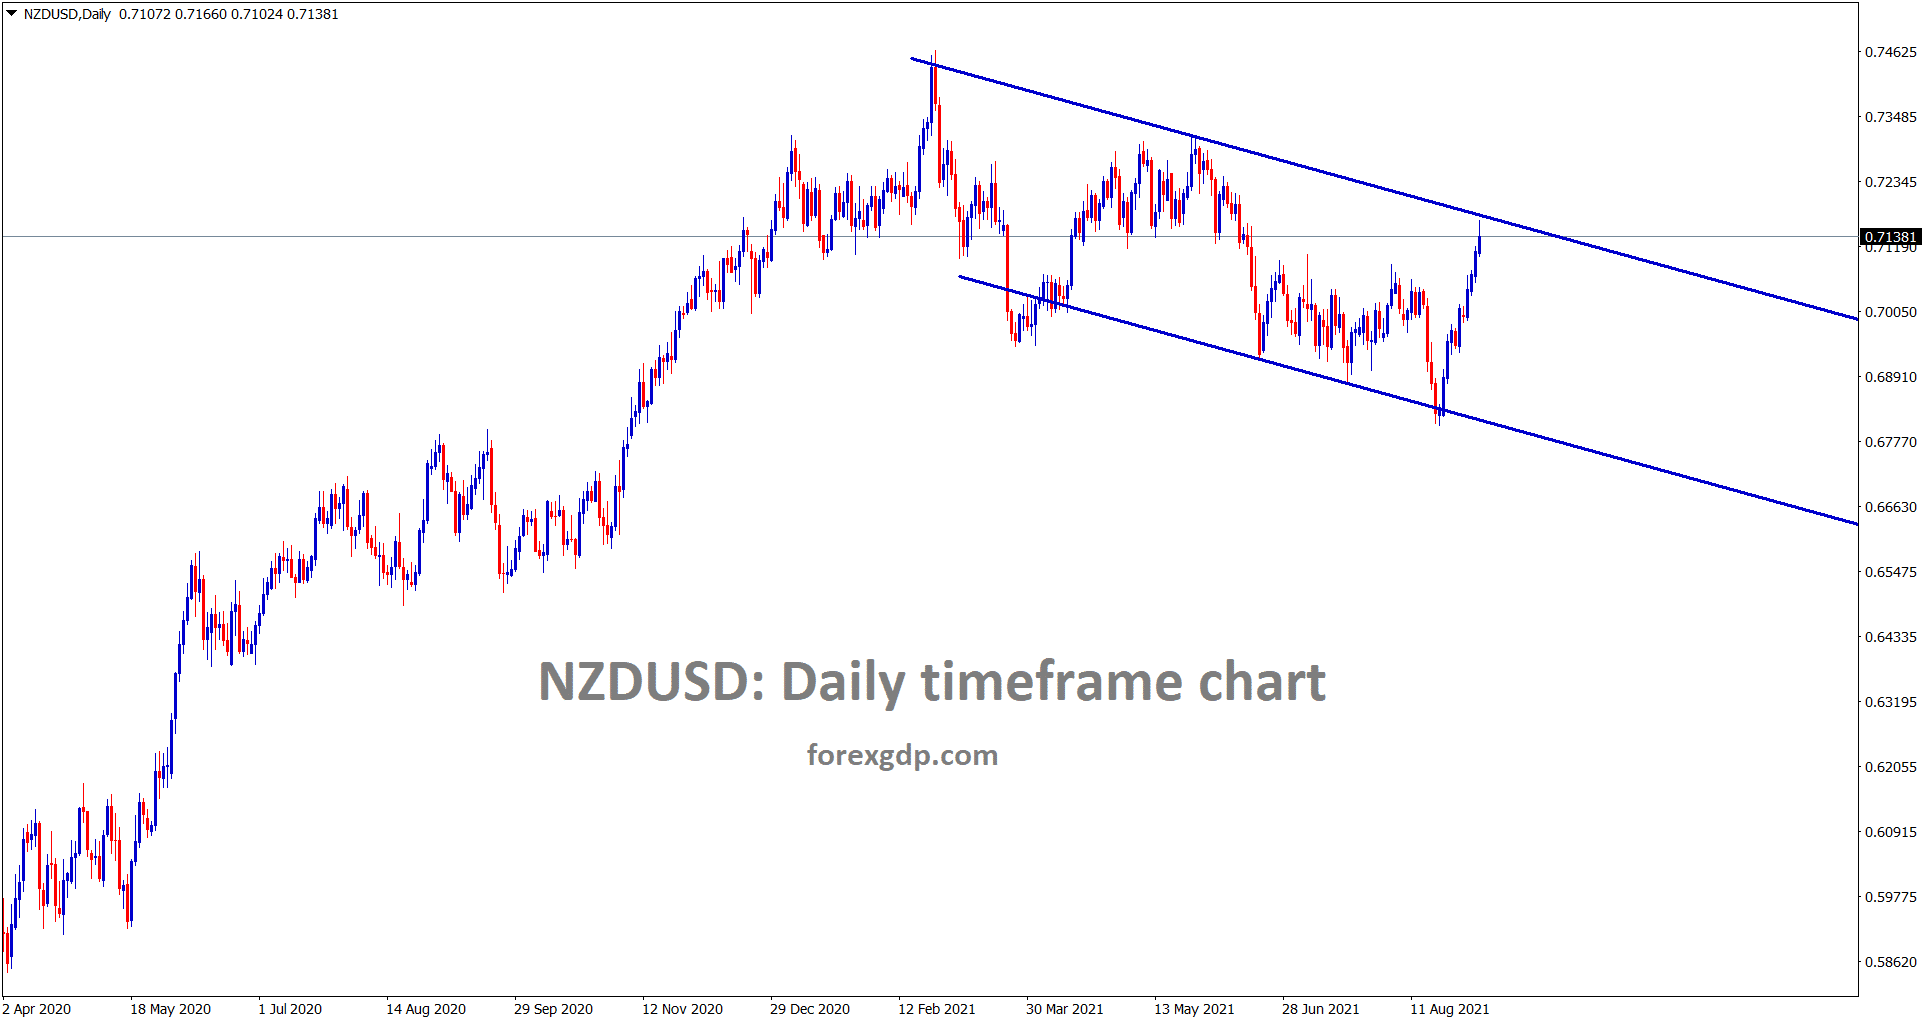 NZDUSD has reached the lower high level of a descending channel